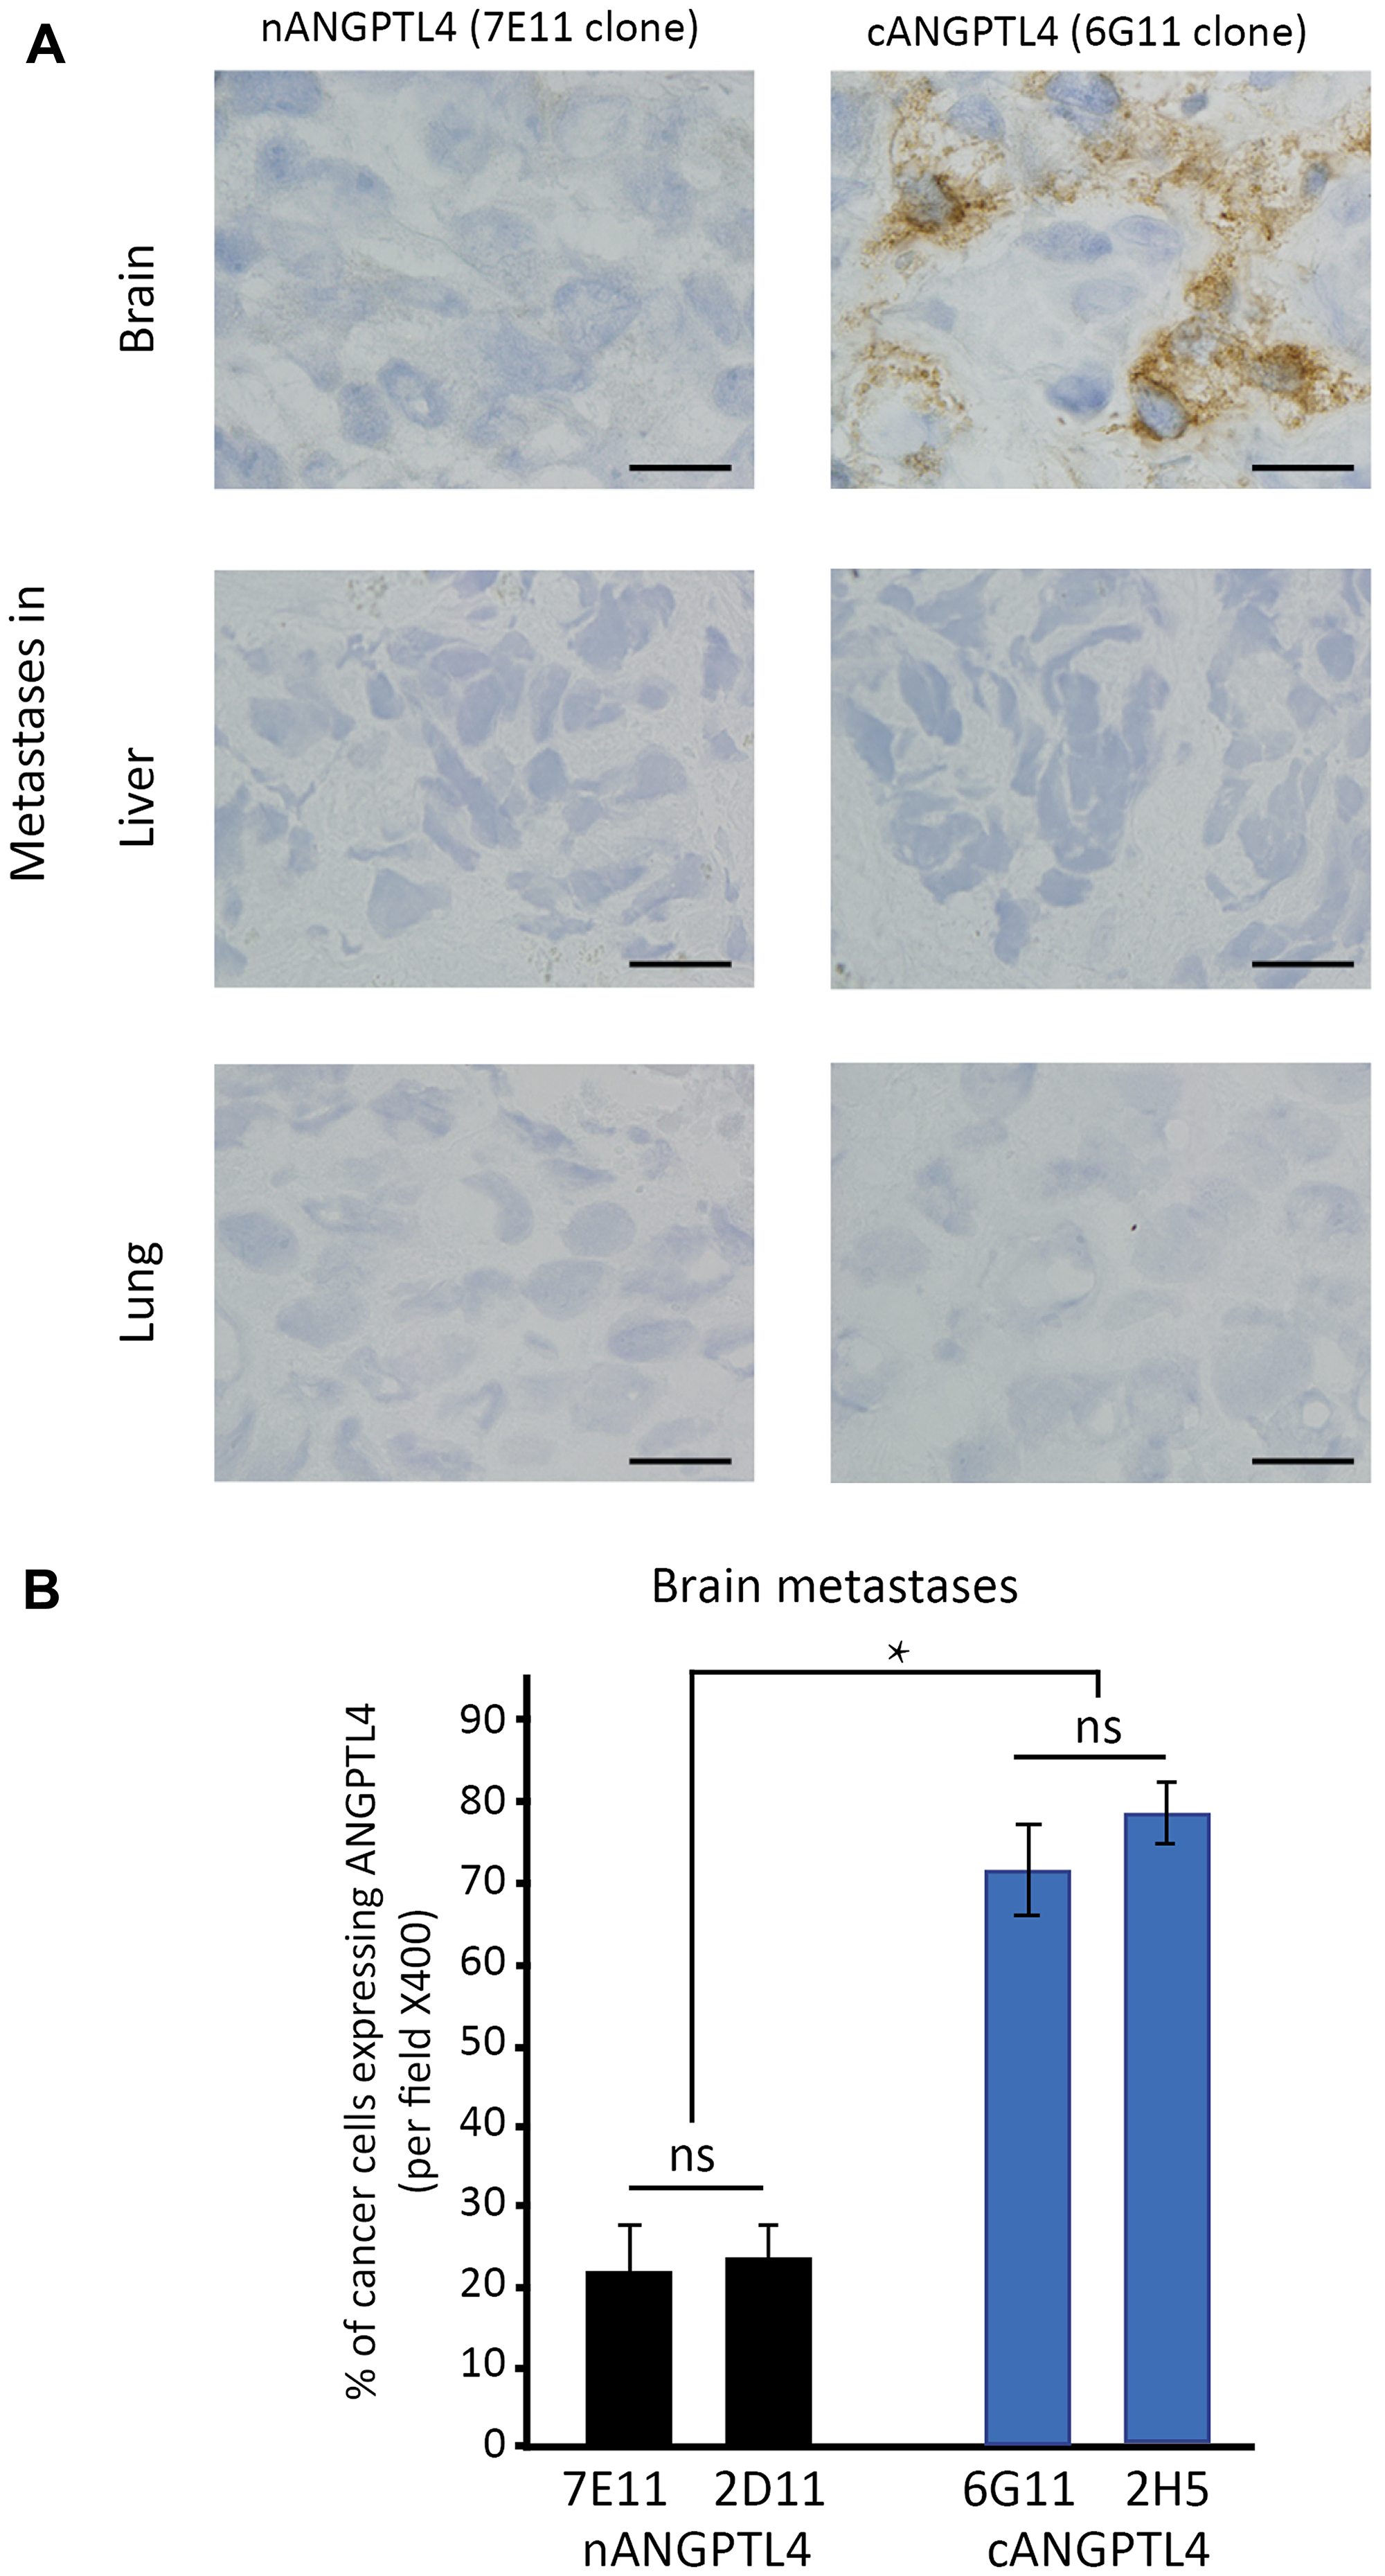 Differential expression of ANGPTL4 fragments in brain metastases of women with breast cancer.